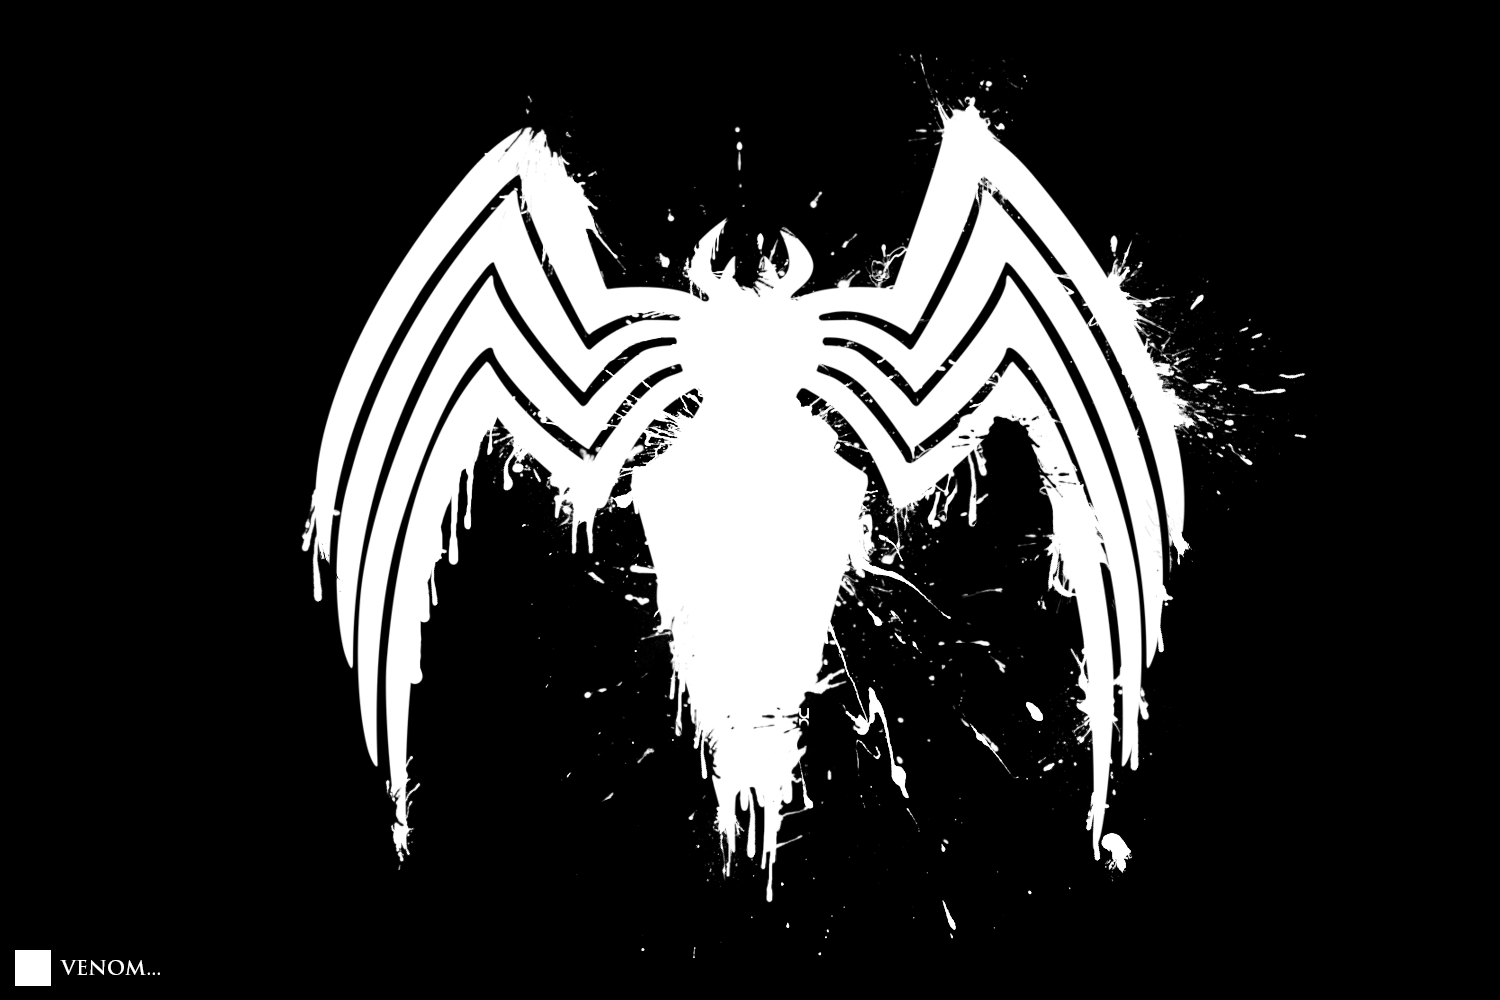 Venom Logo Png (101+ images in Collection) Page 1.